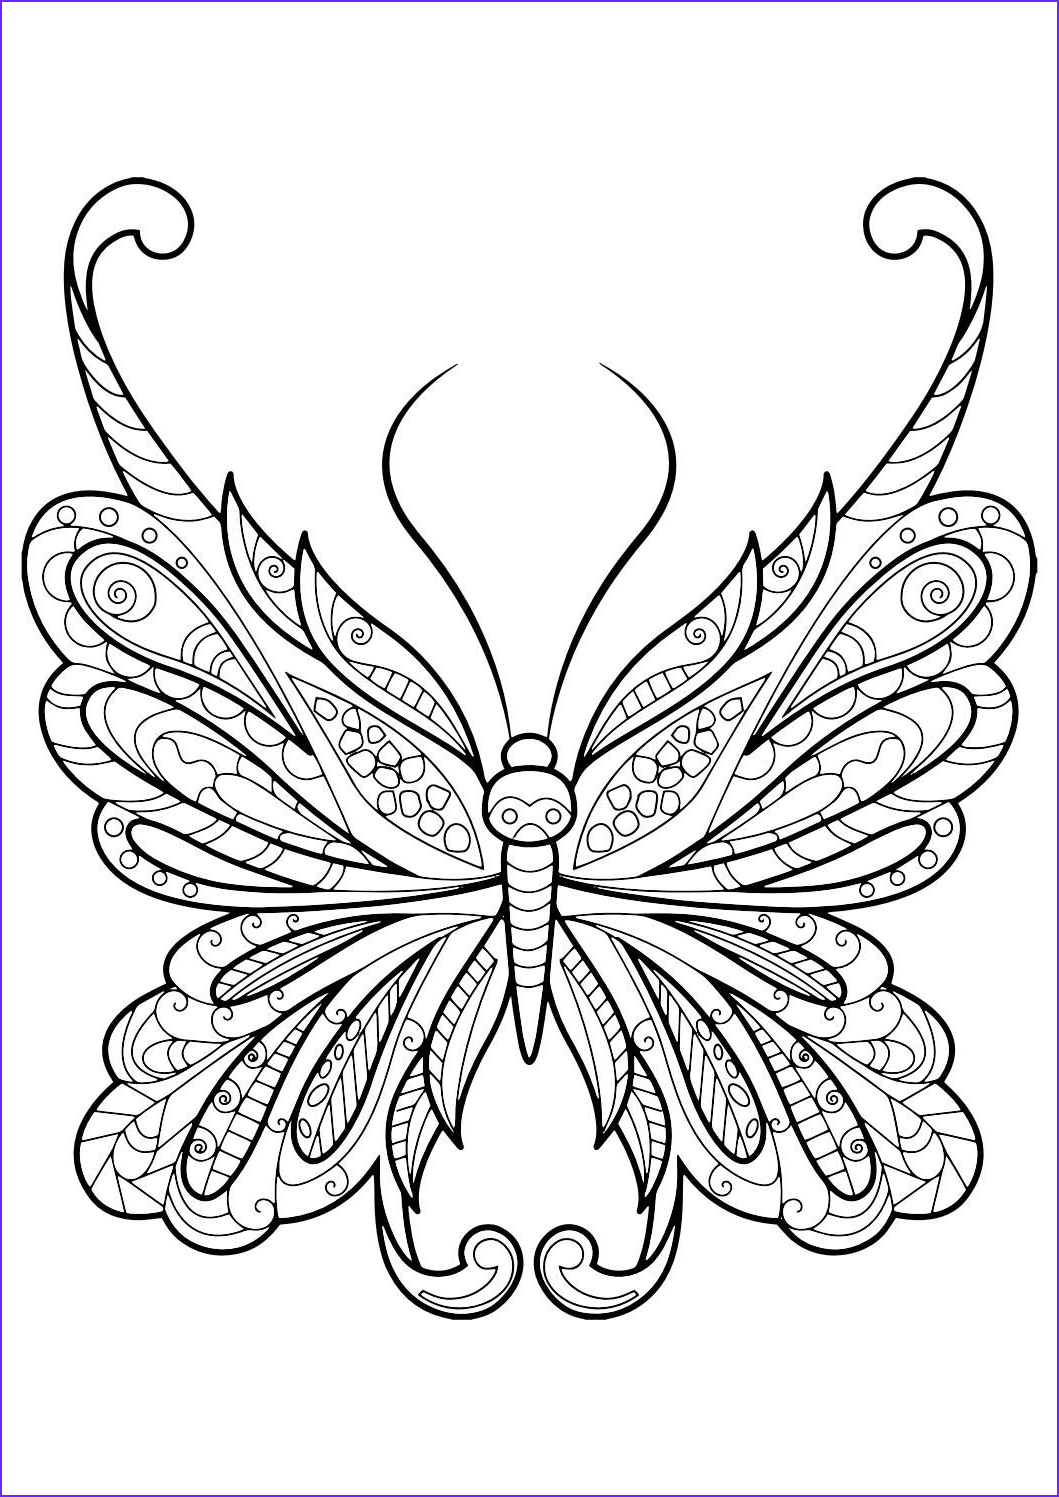 Simple Adult Coloring Pages New Stock Adult butterfly Coloring Book